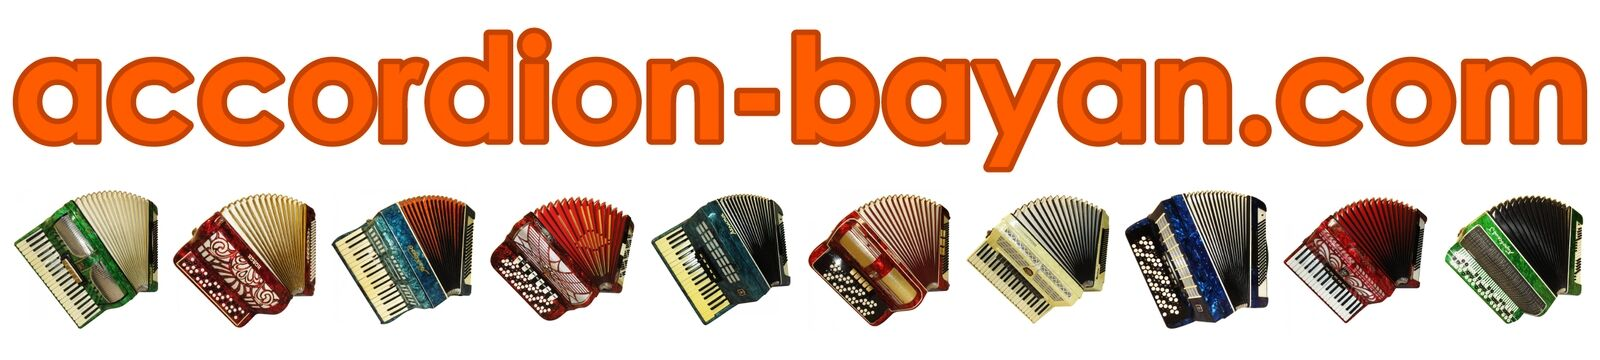 accordion-bayan.com